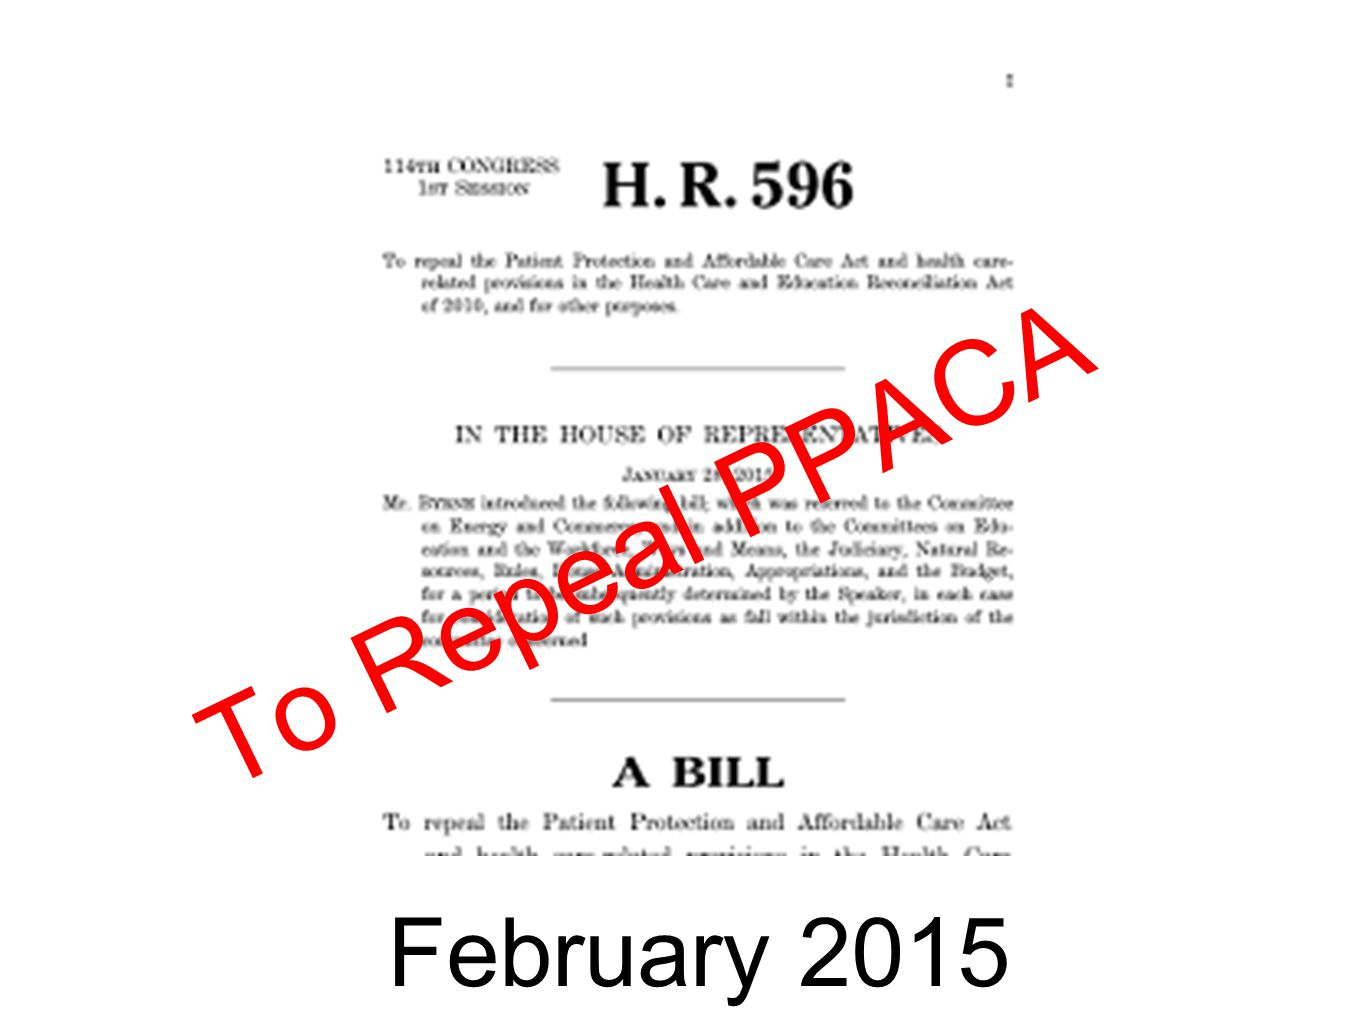 To Repeal PPACA February 2015